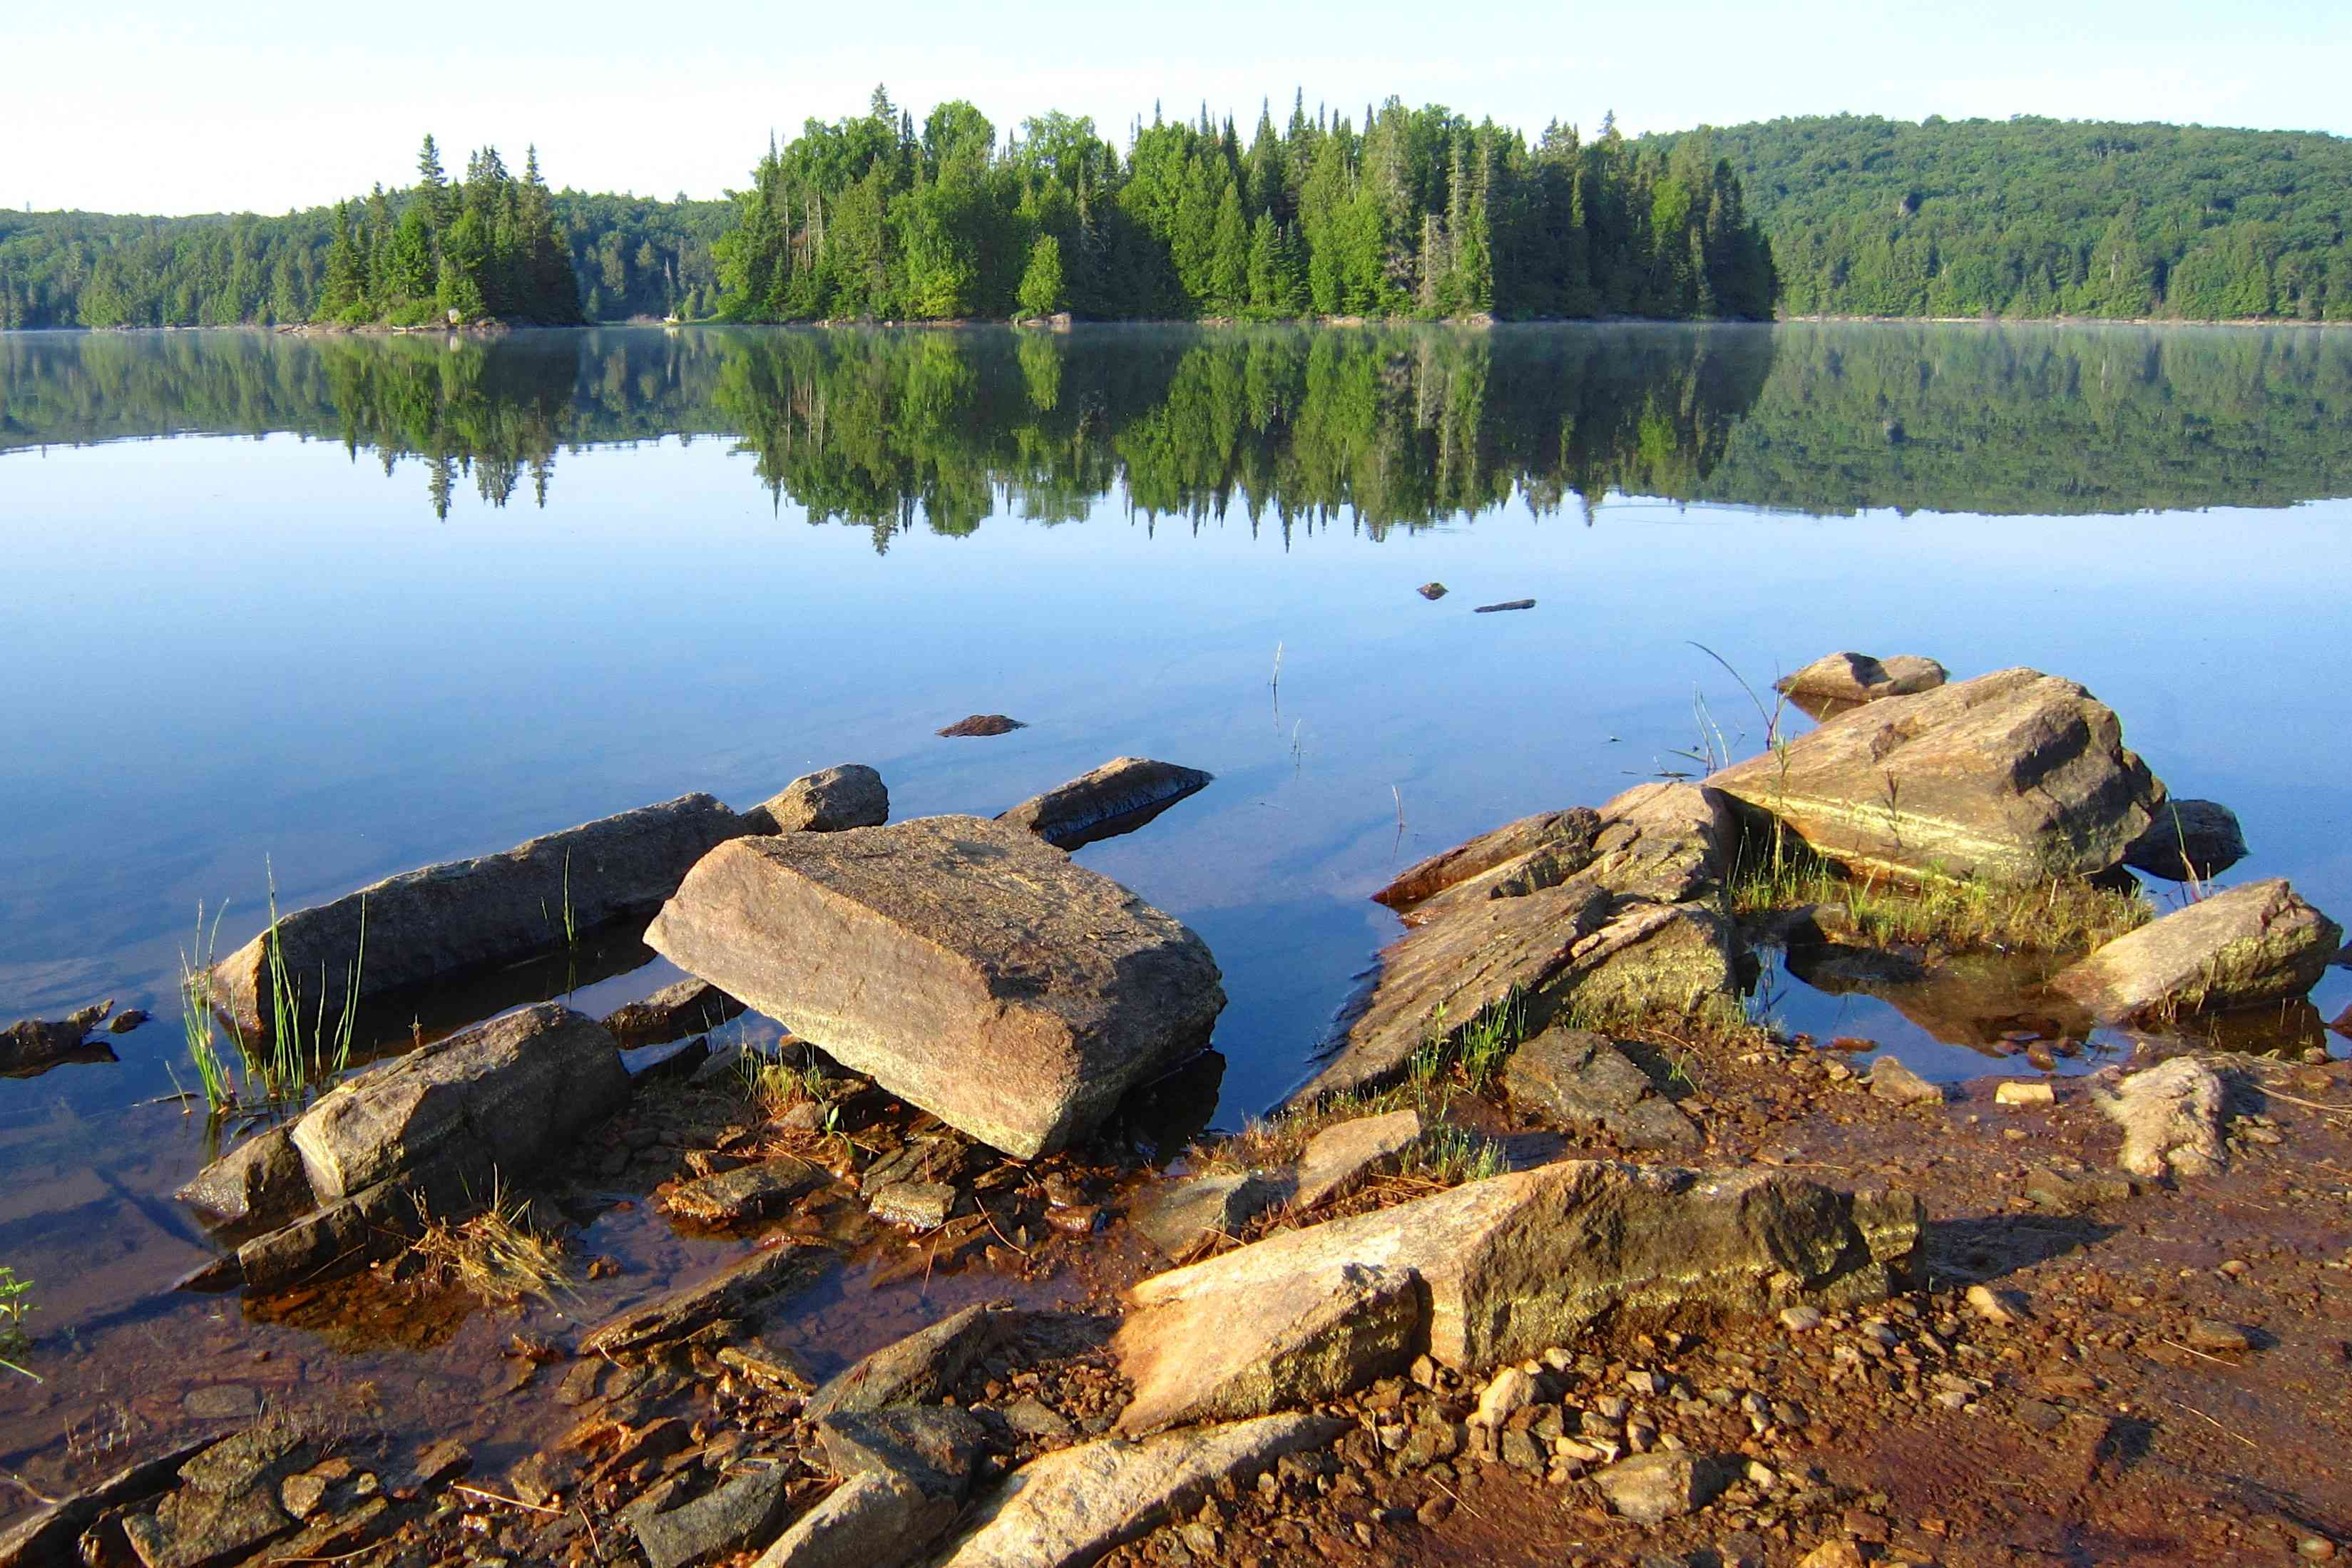 Rocks at the edge of water with trees in the distance at Algonquin Provincial Park